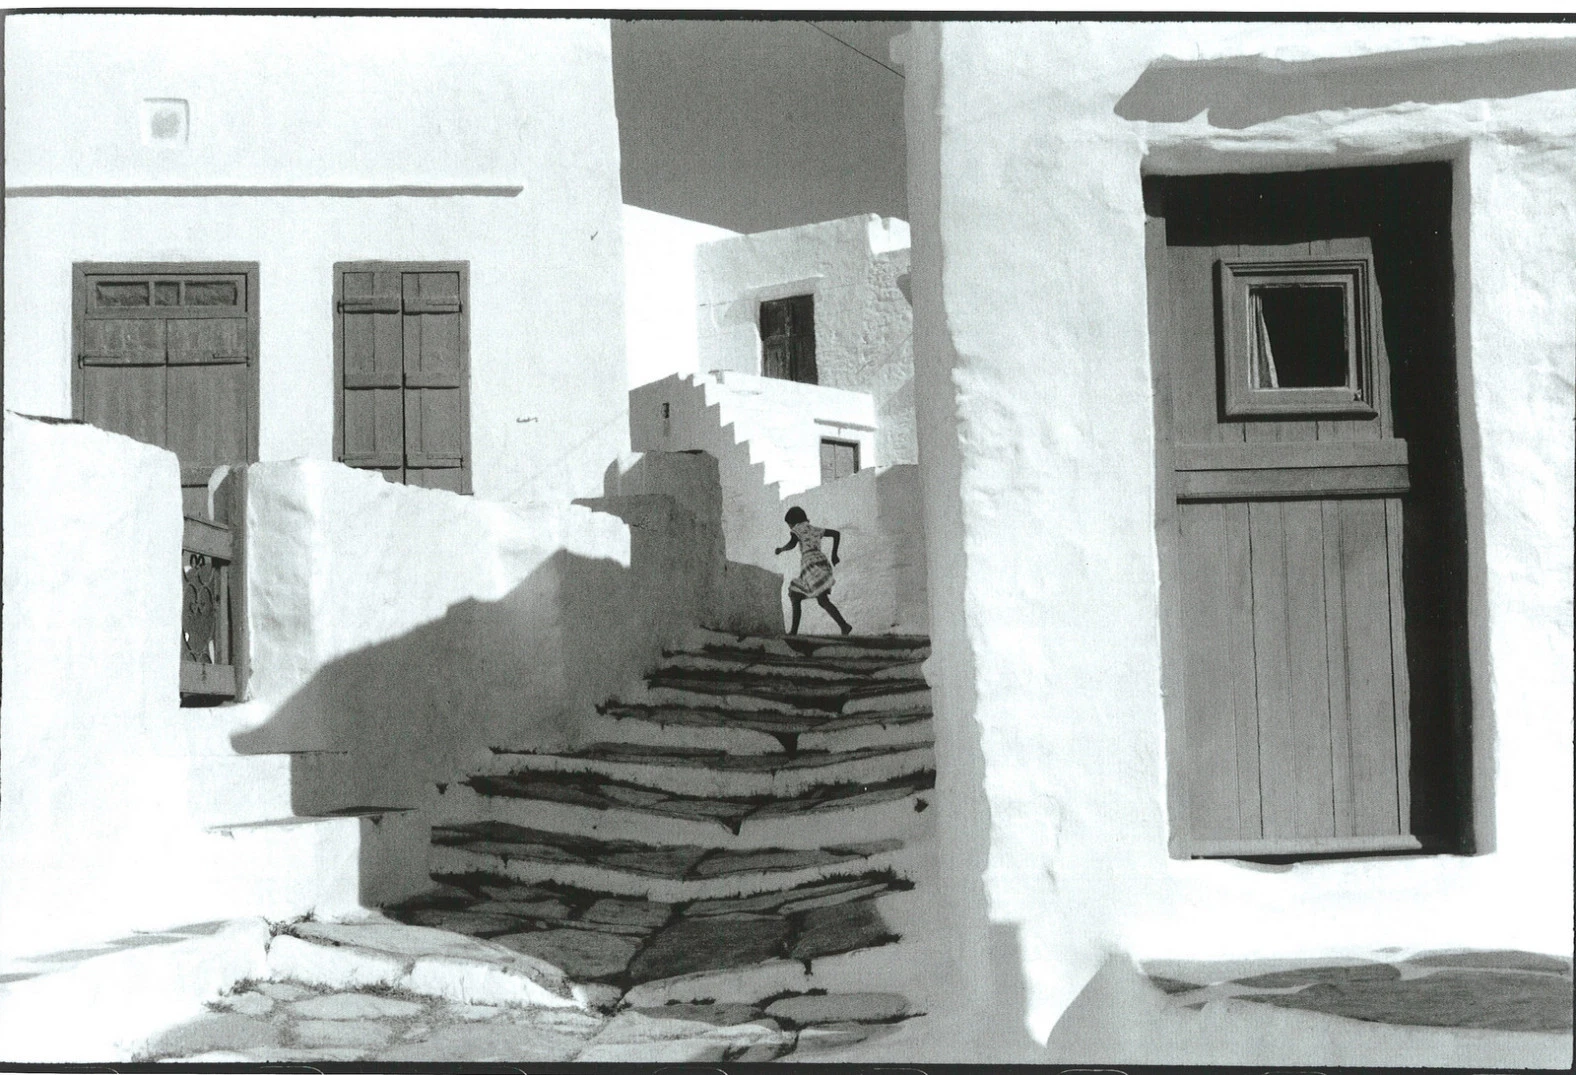 A black and white image of a child running up a staircase in a white village, by famous photographer Henri Cartier-Bresson